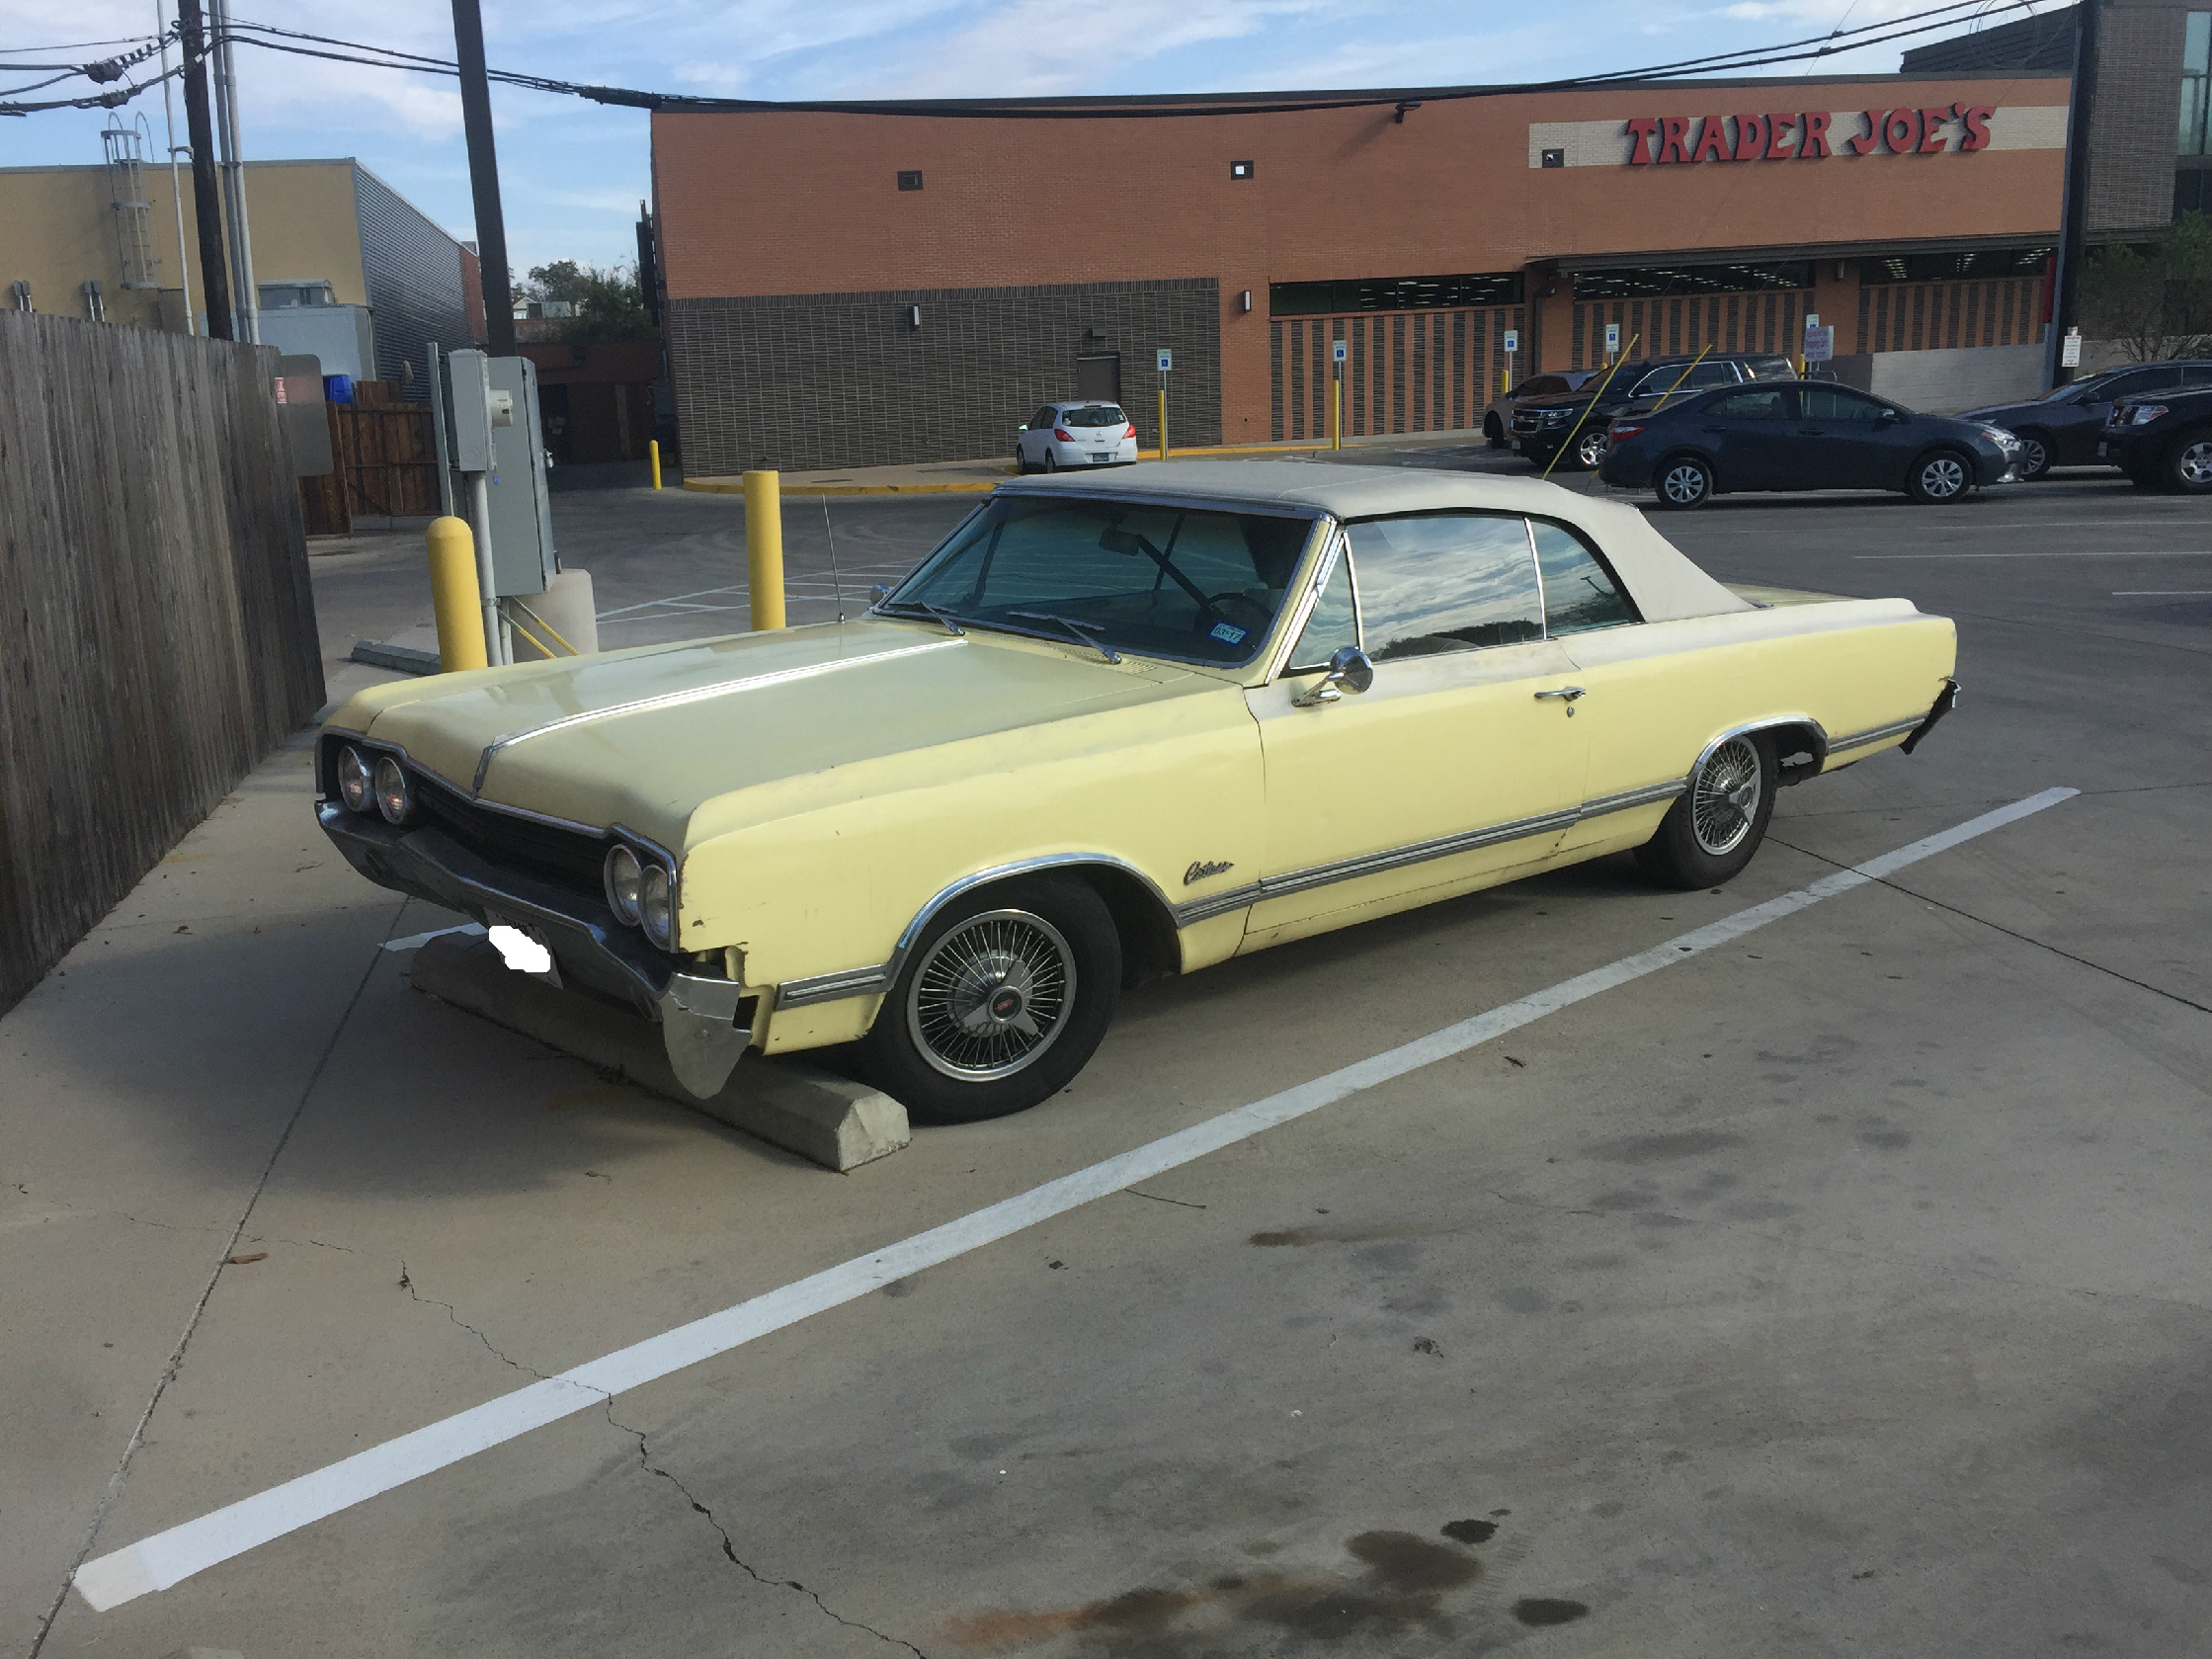 Just a cool old convertible parked at Trader Joe\'s | Snowdoggie.com